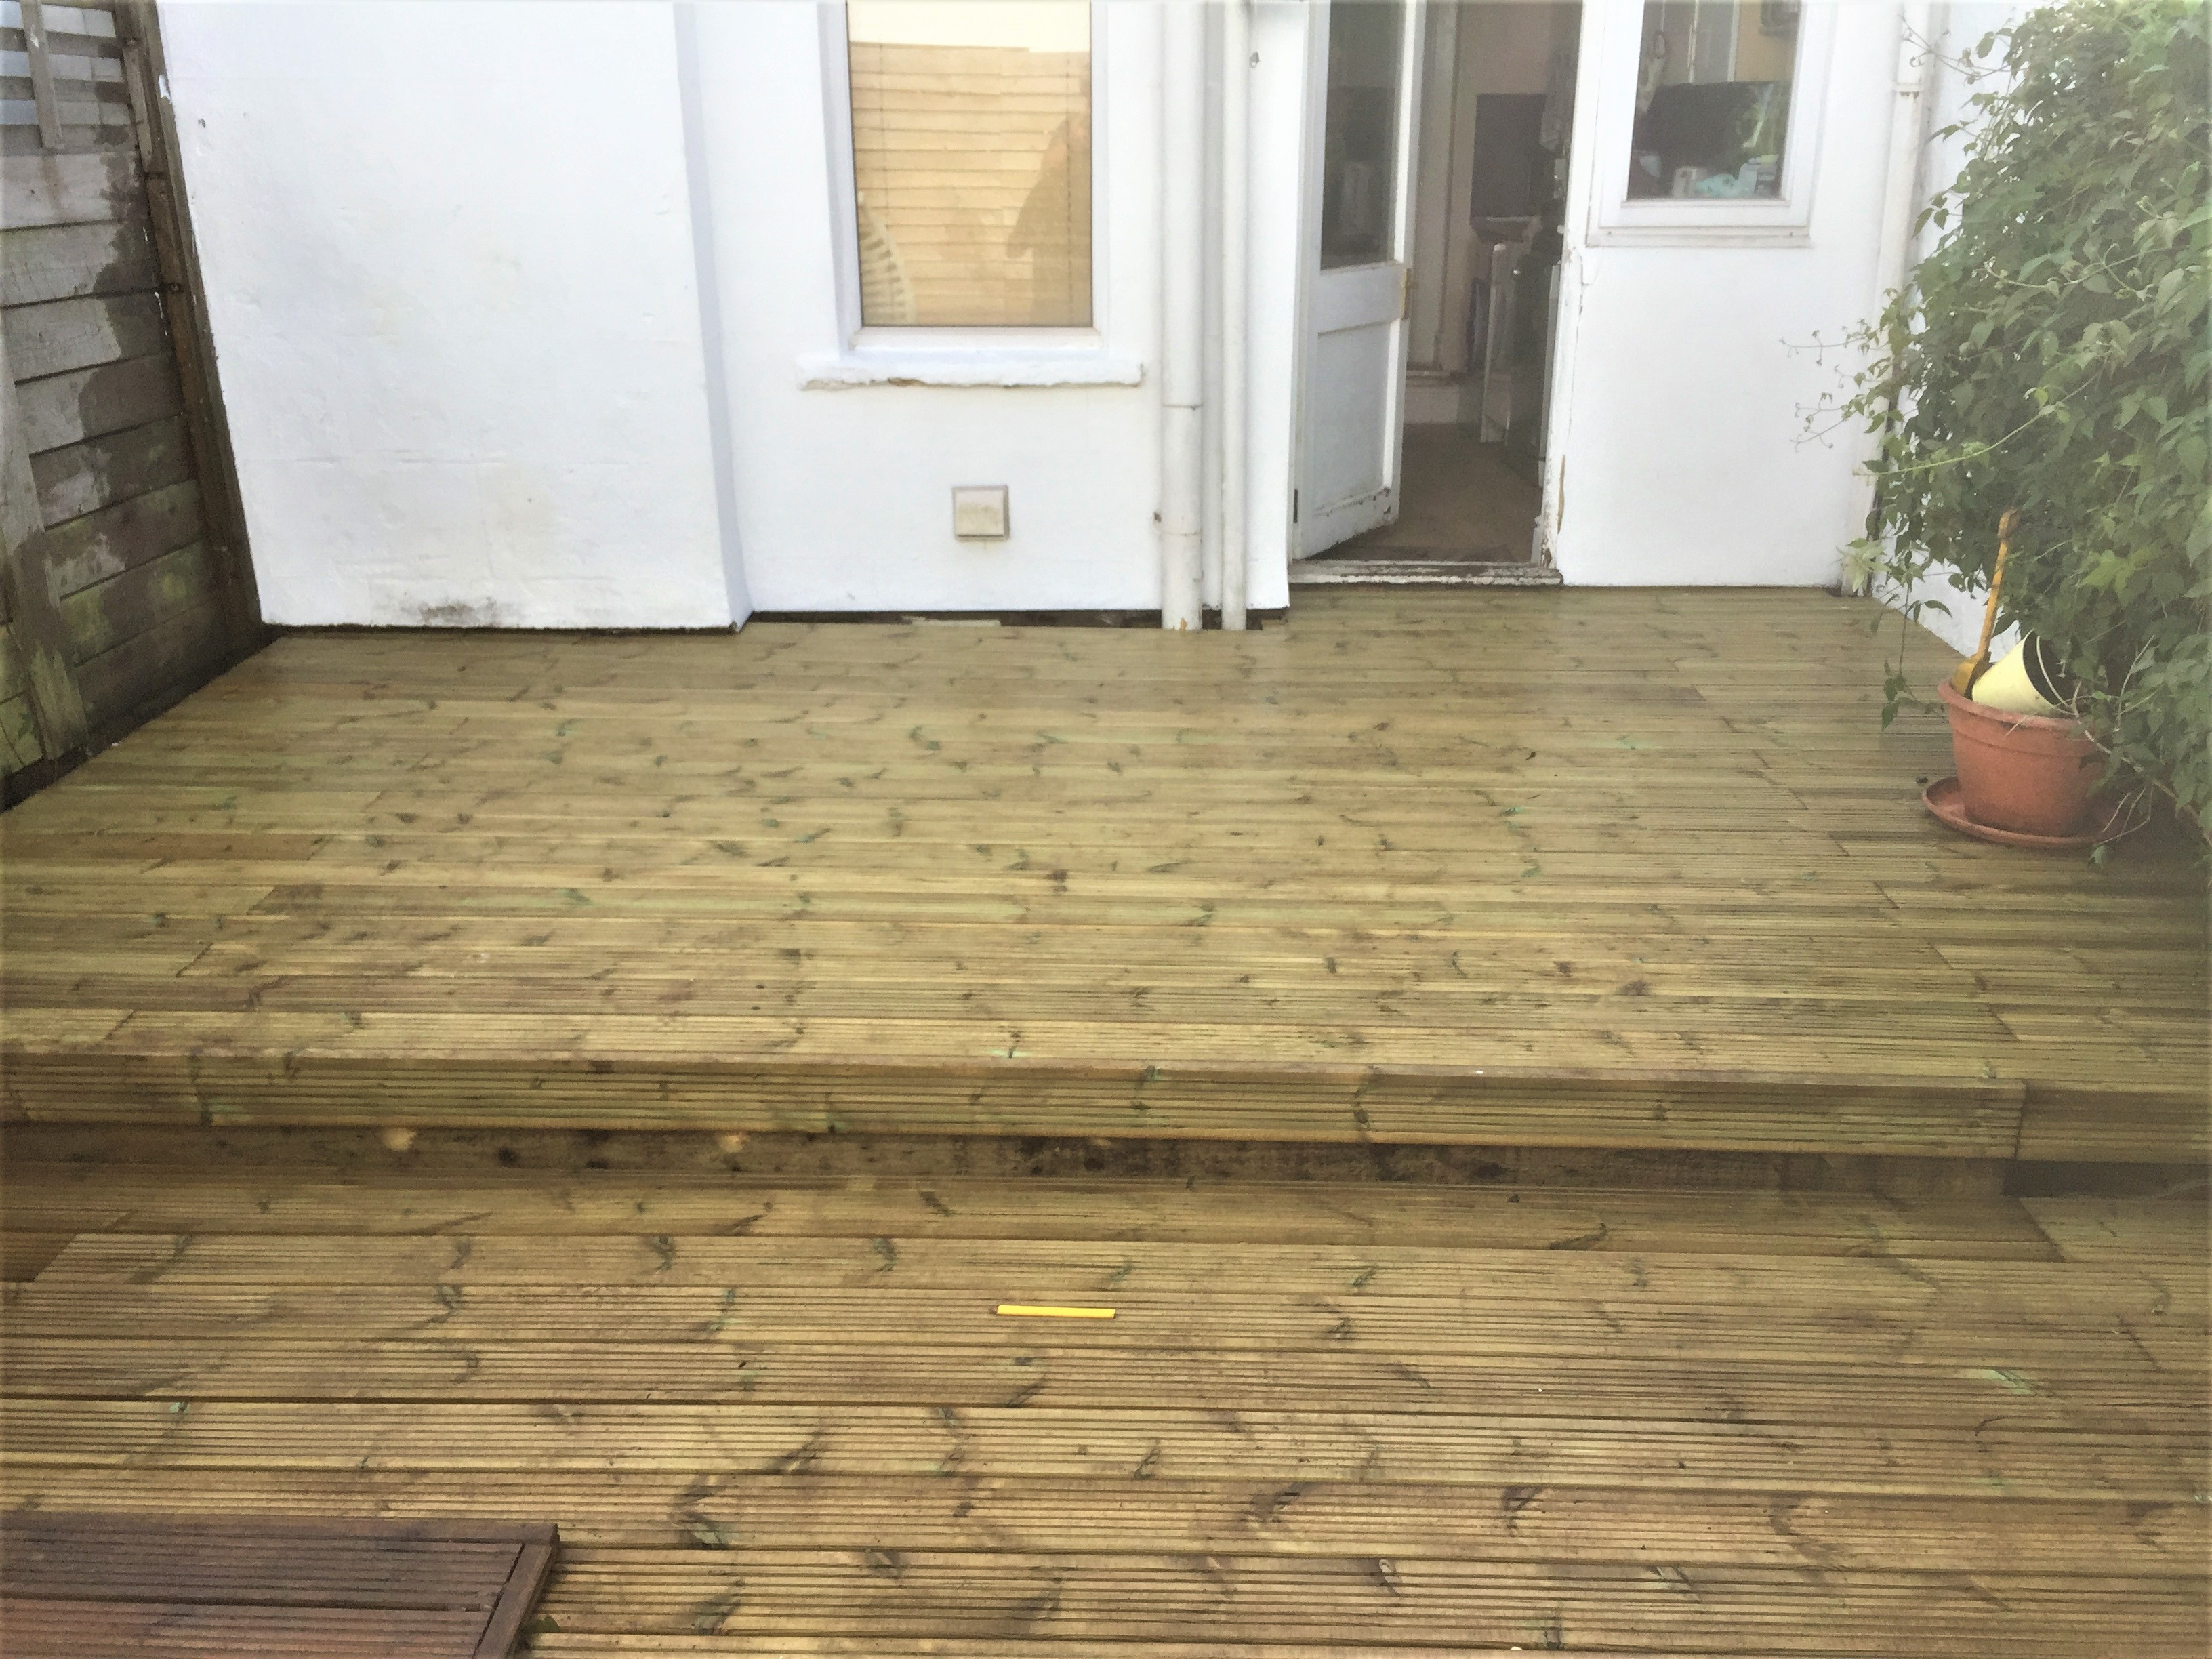 Completed decking with step